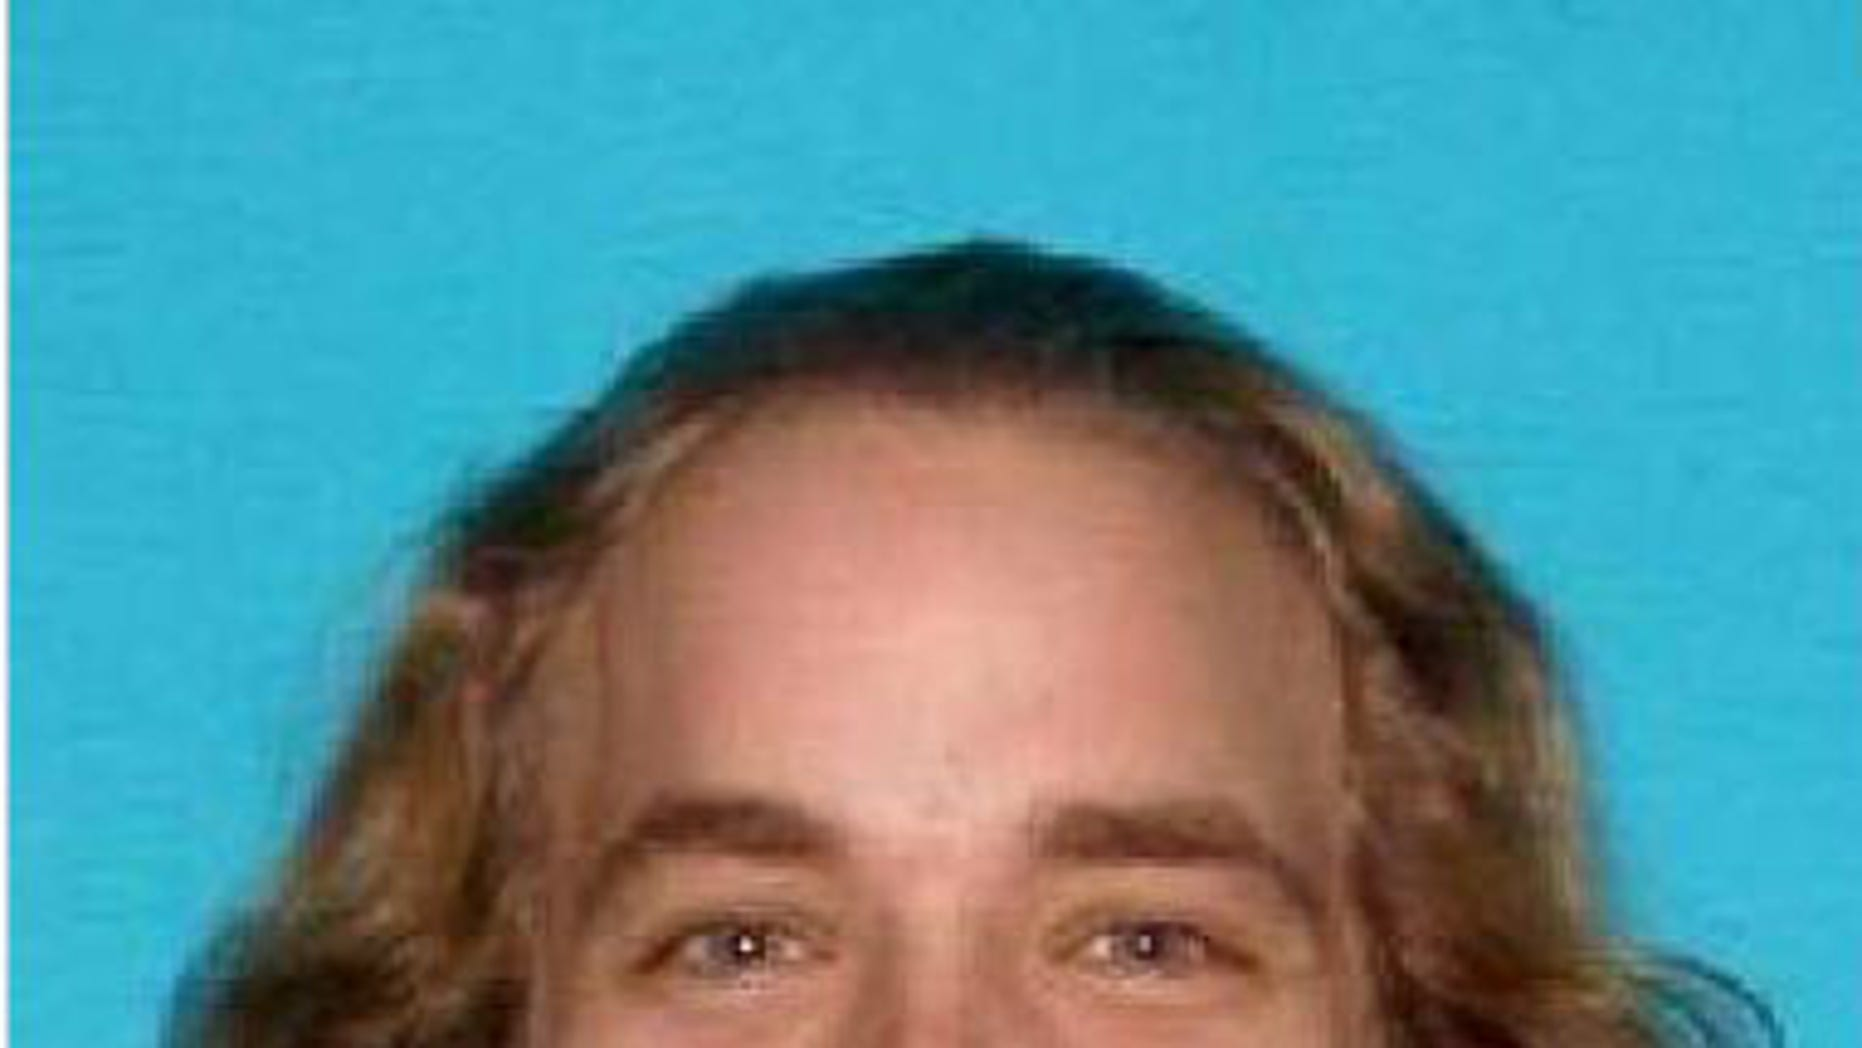 Kellen Sorber, 27, is wanted for allegedly starting a fire at a local GOP headquarters in Wyoming.